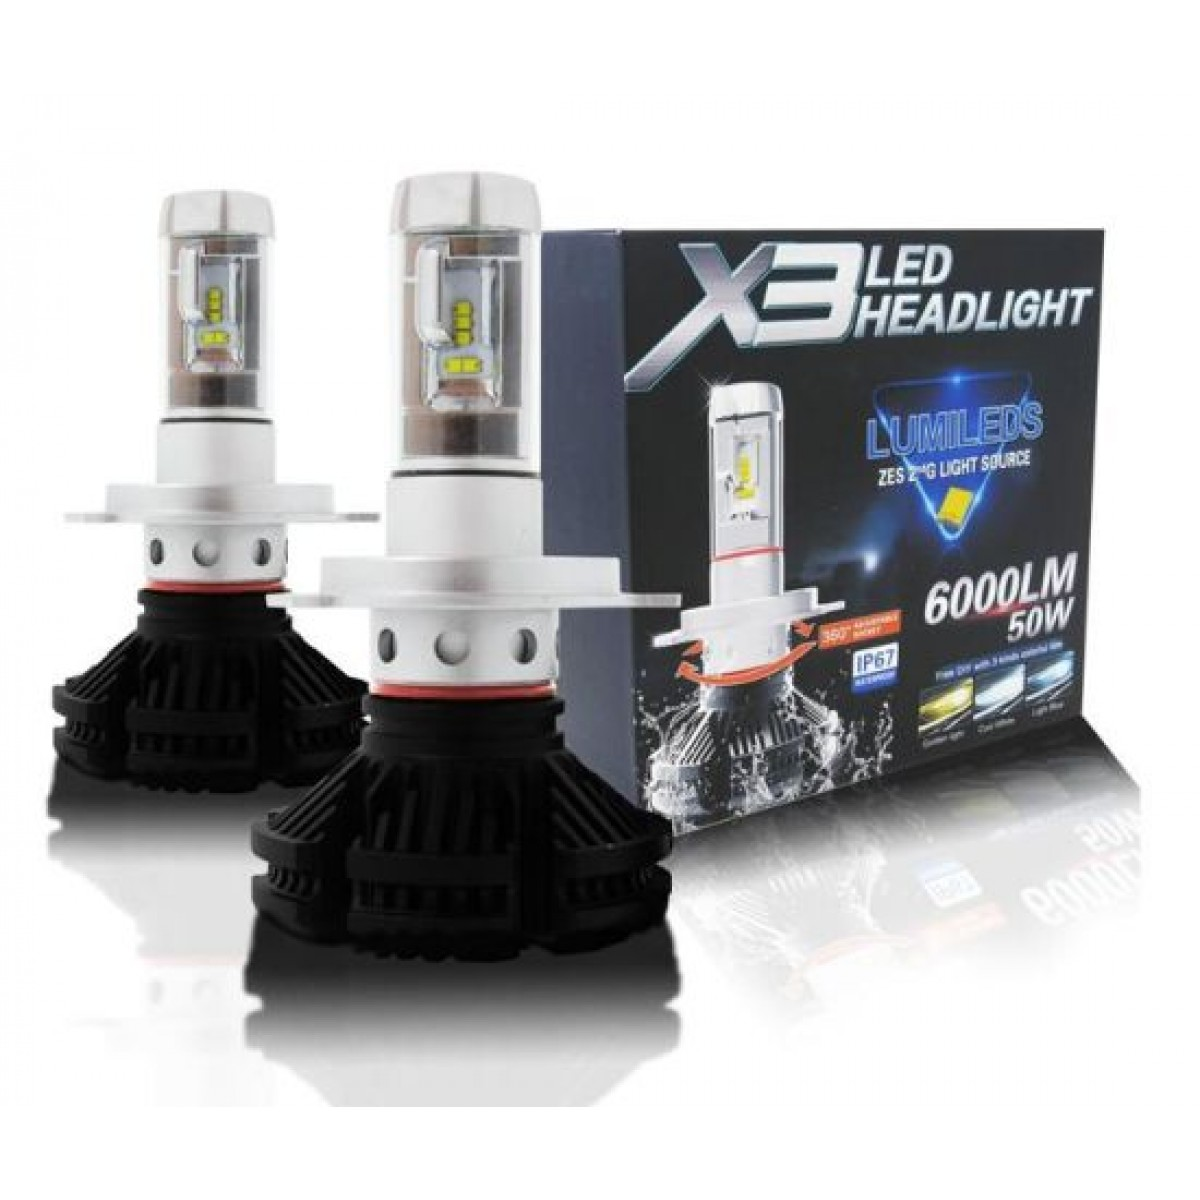 LED φώτα αυτοκινήτου H1, 50W, 6000L 6500K – X3 Led headlights Lumileds